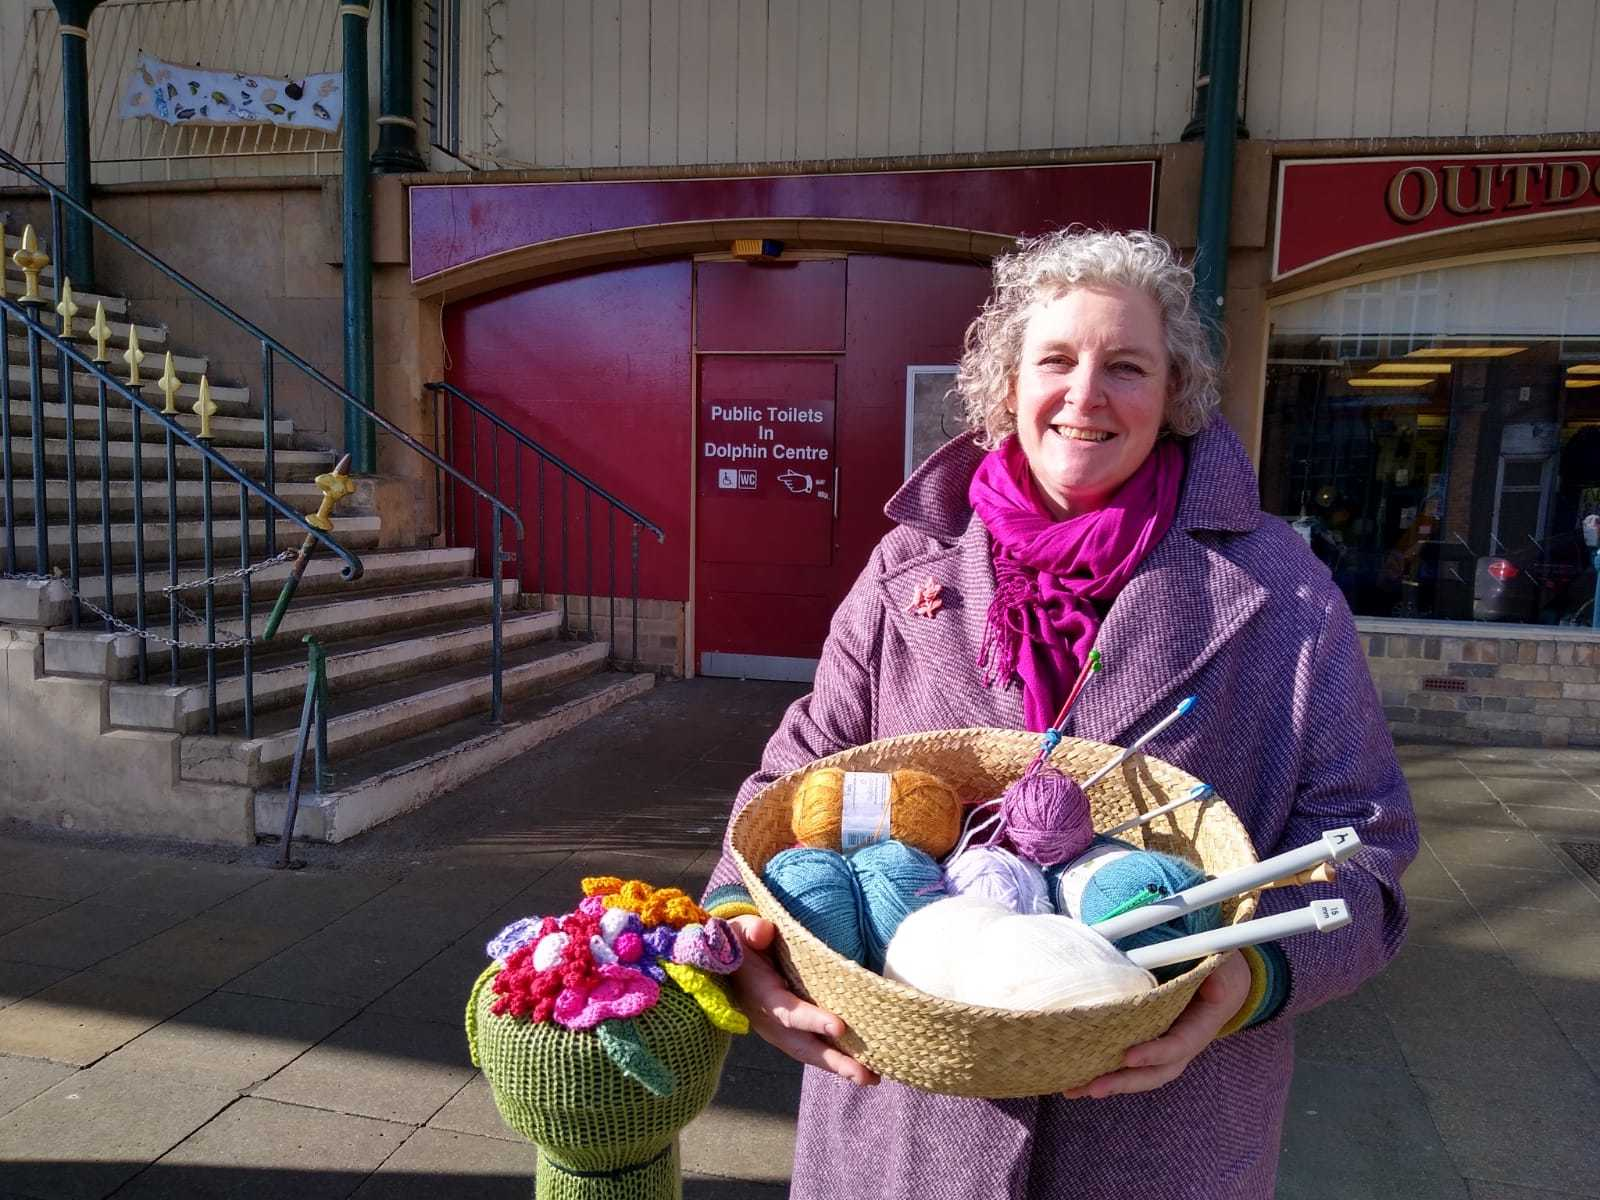 Knitted creations brighten Darlington town centre ahead of market's wool fair